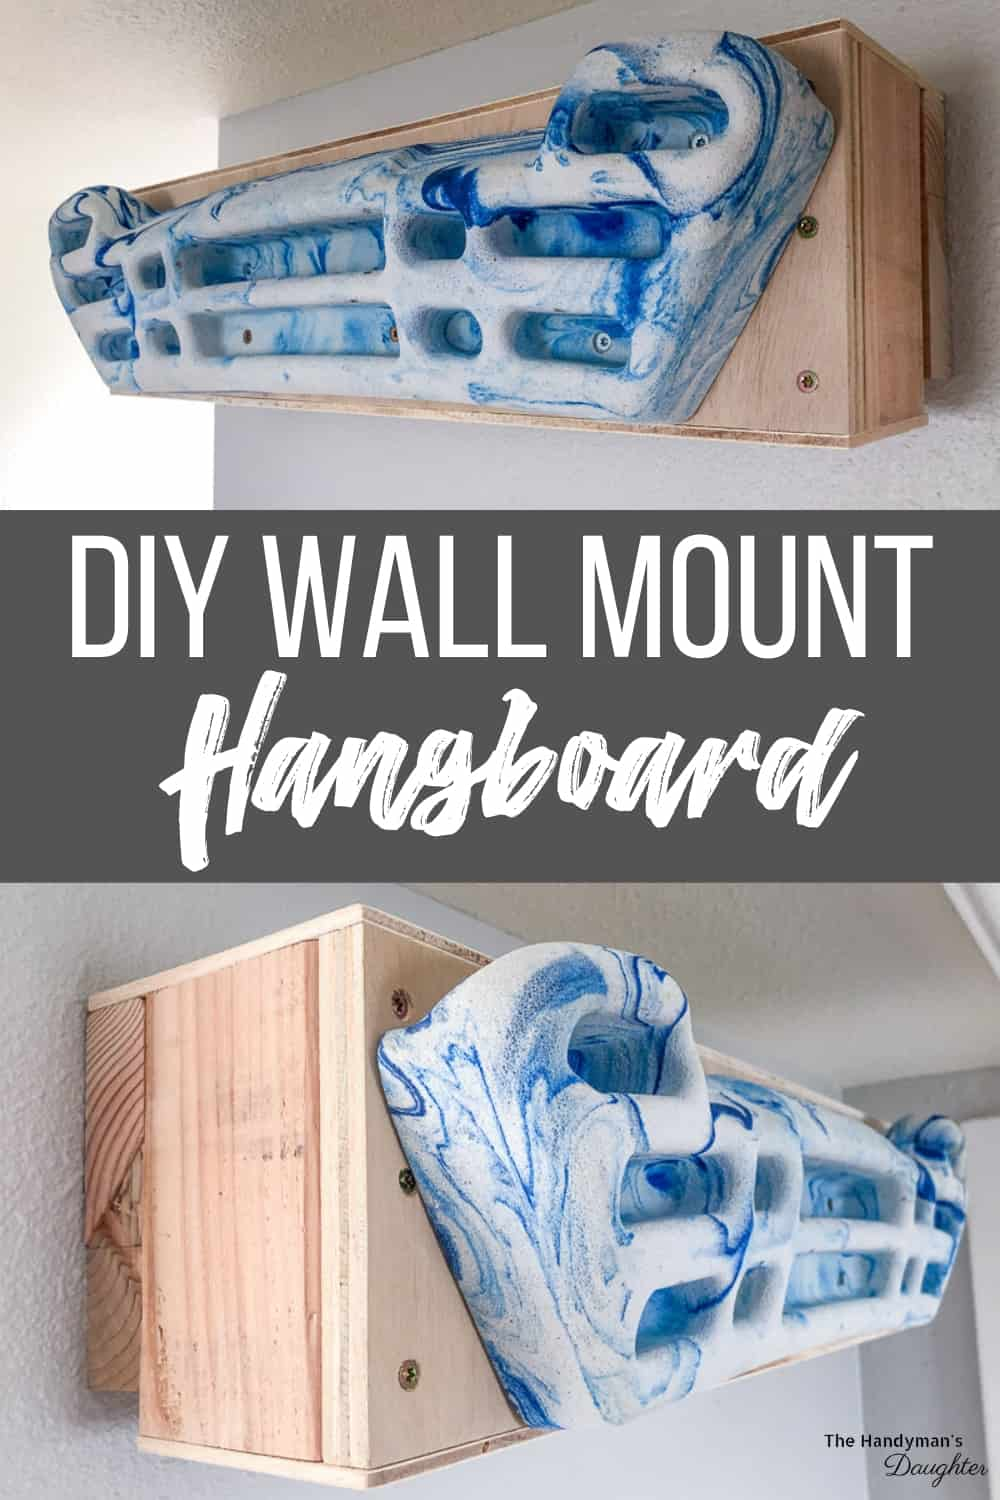 DIY hangboard mount for the wall